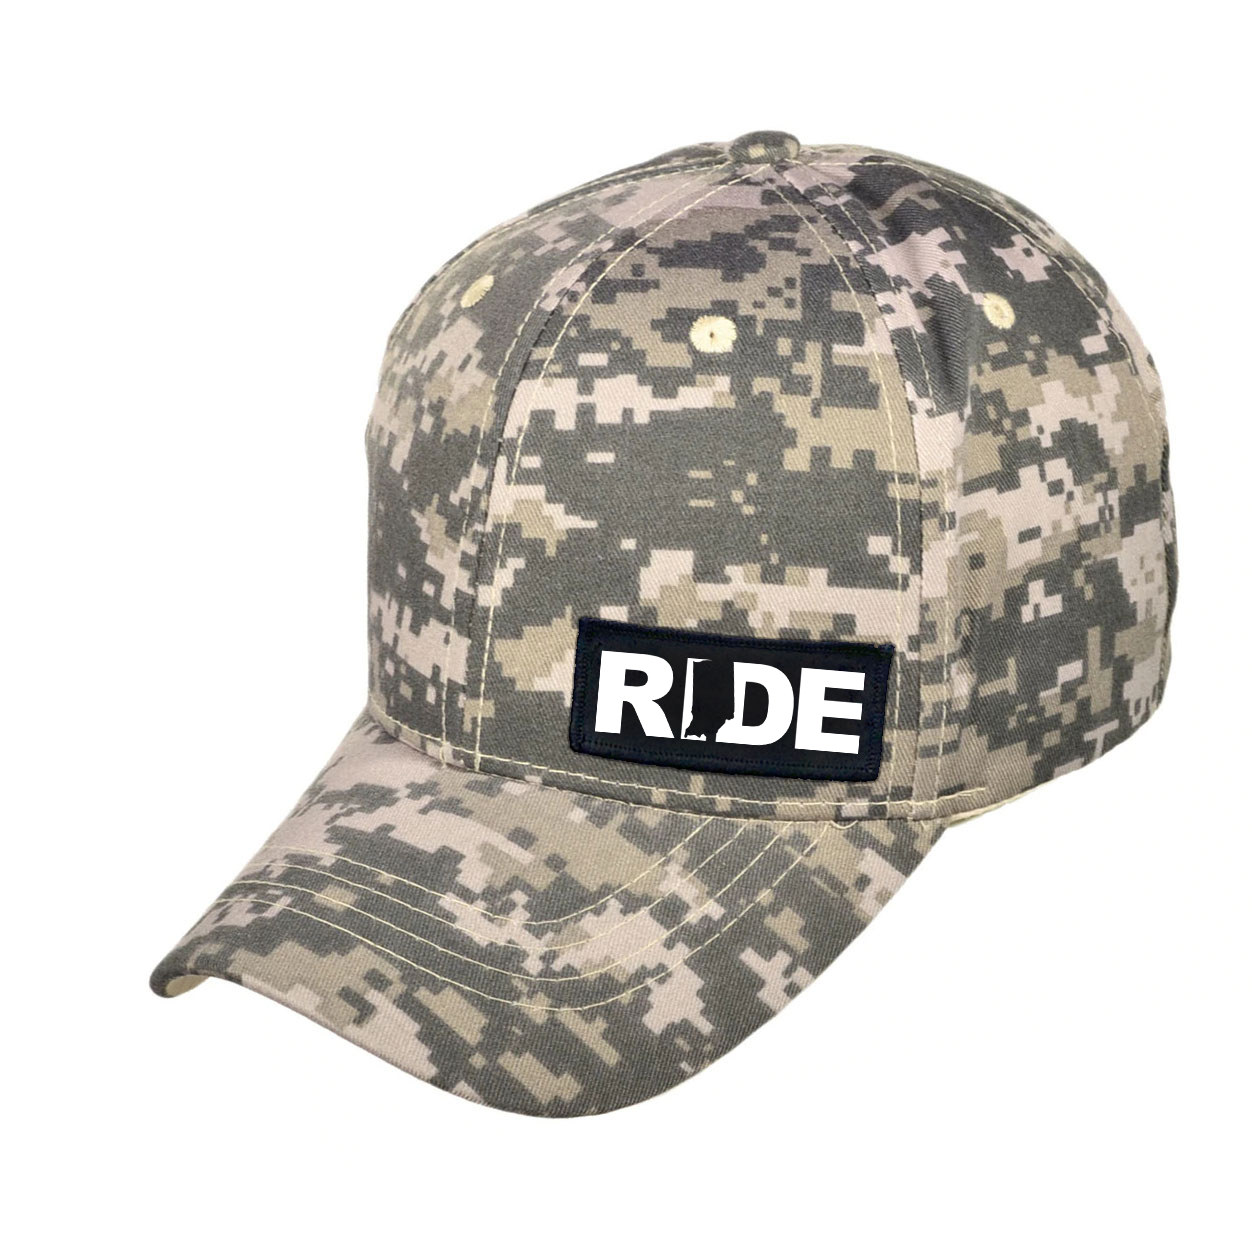 Ride Indiana Night Out Woven Patch Hat Digital Camo (White Logo)